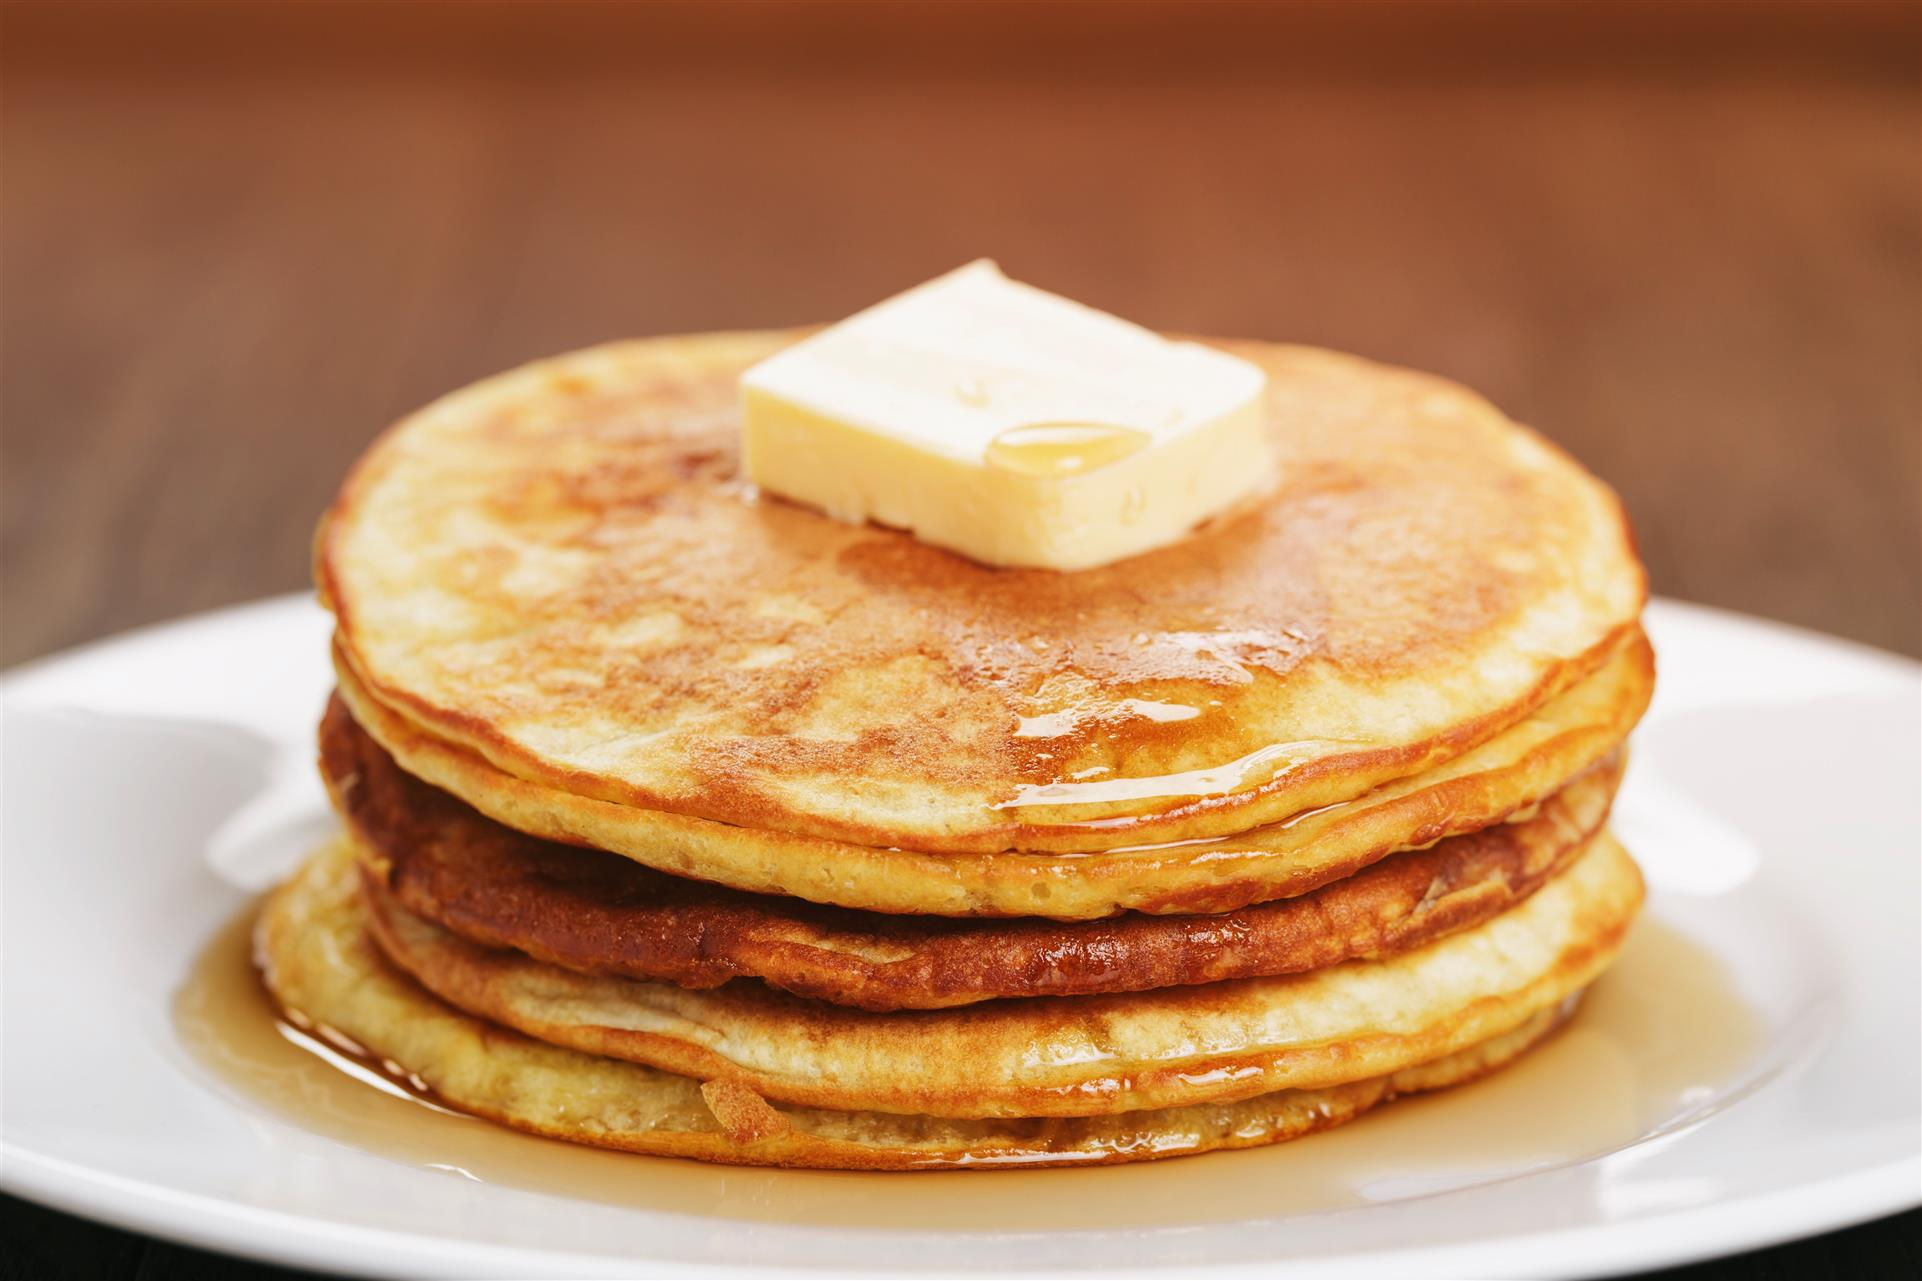 stack of pancakes topped with butter and syrup